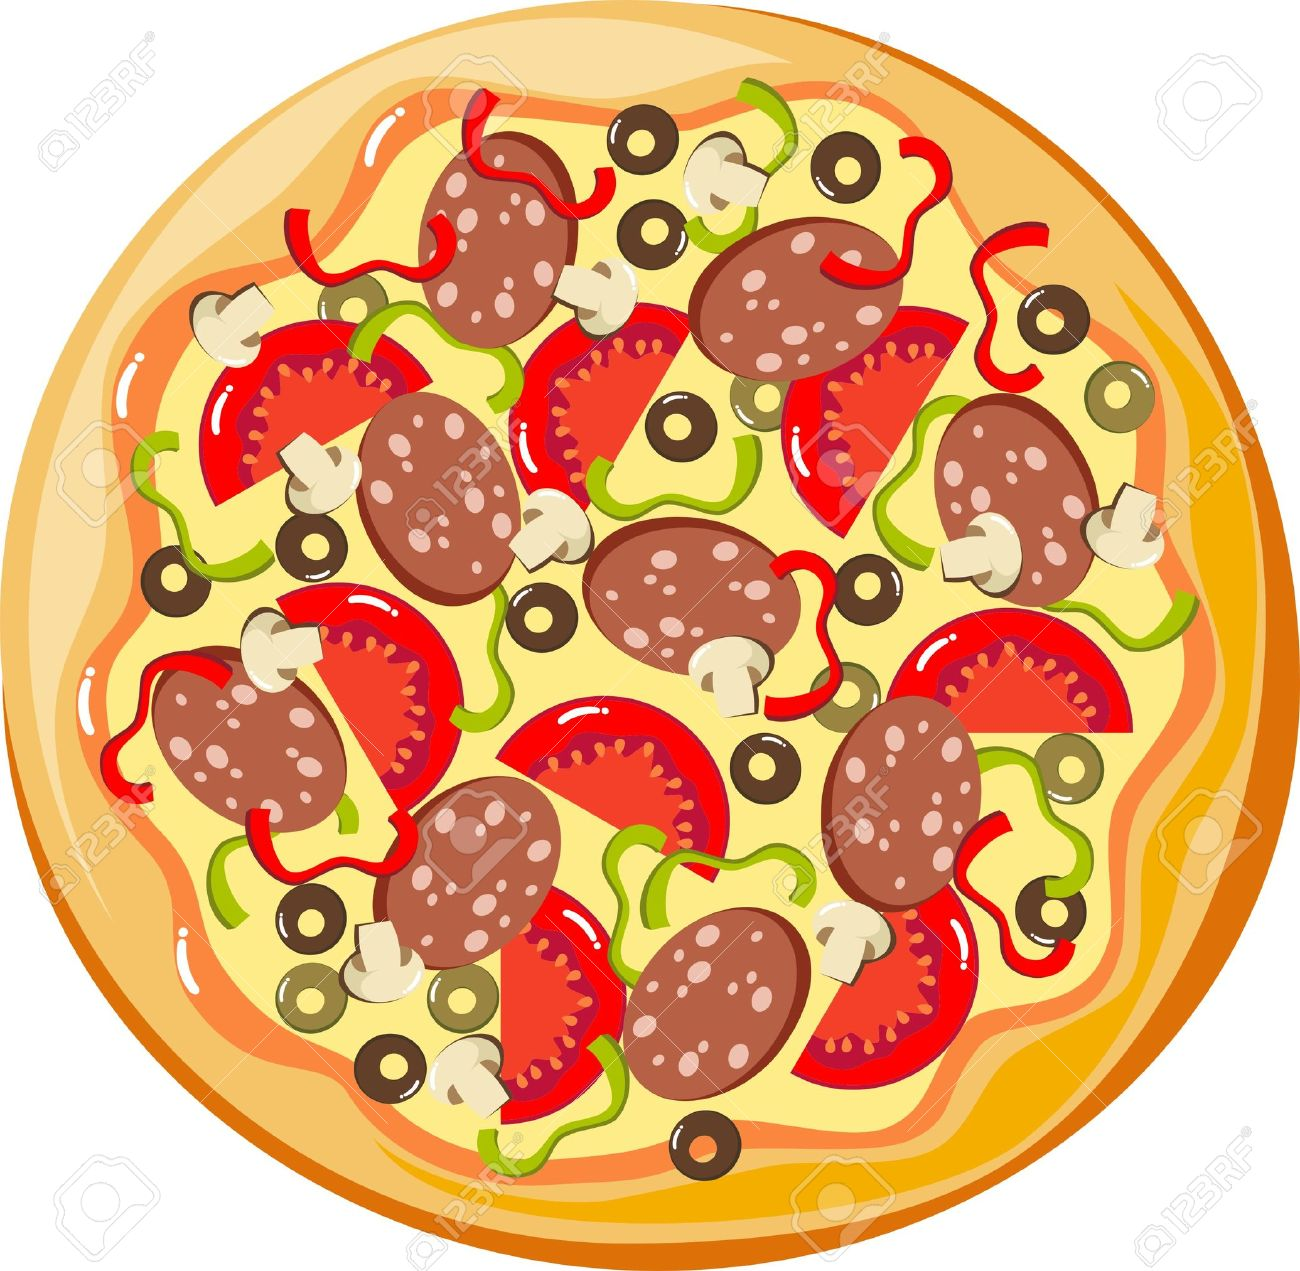 Whole pizza clipart 3 » Clipart Station.